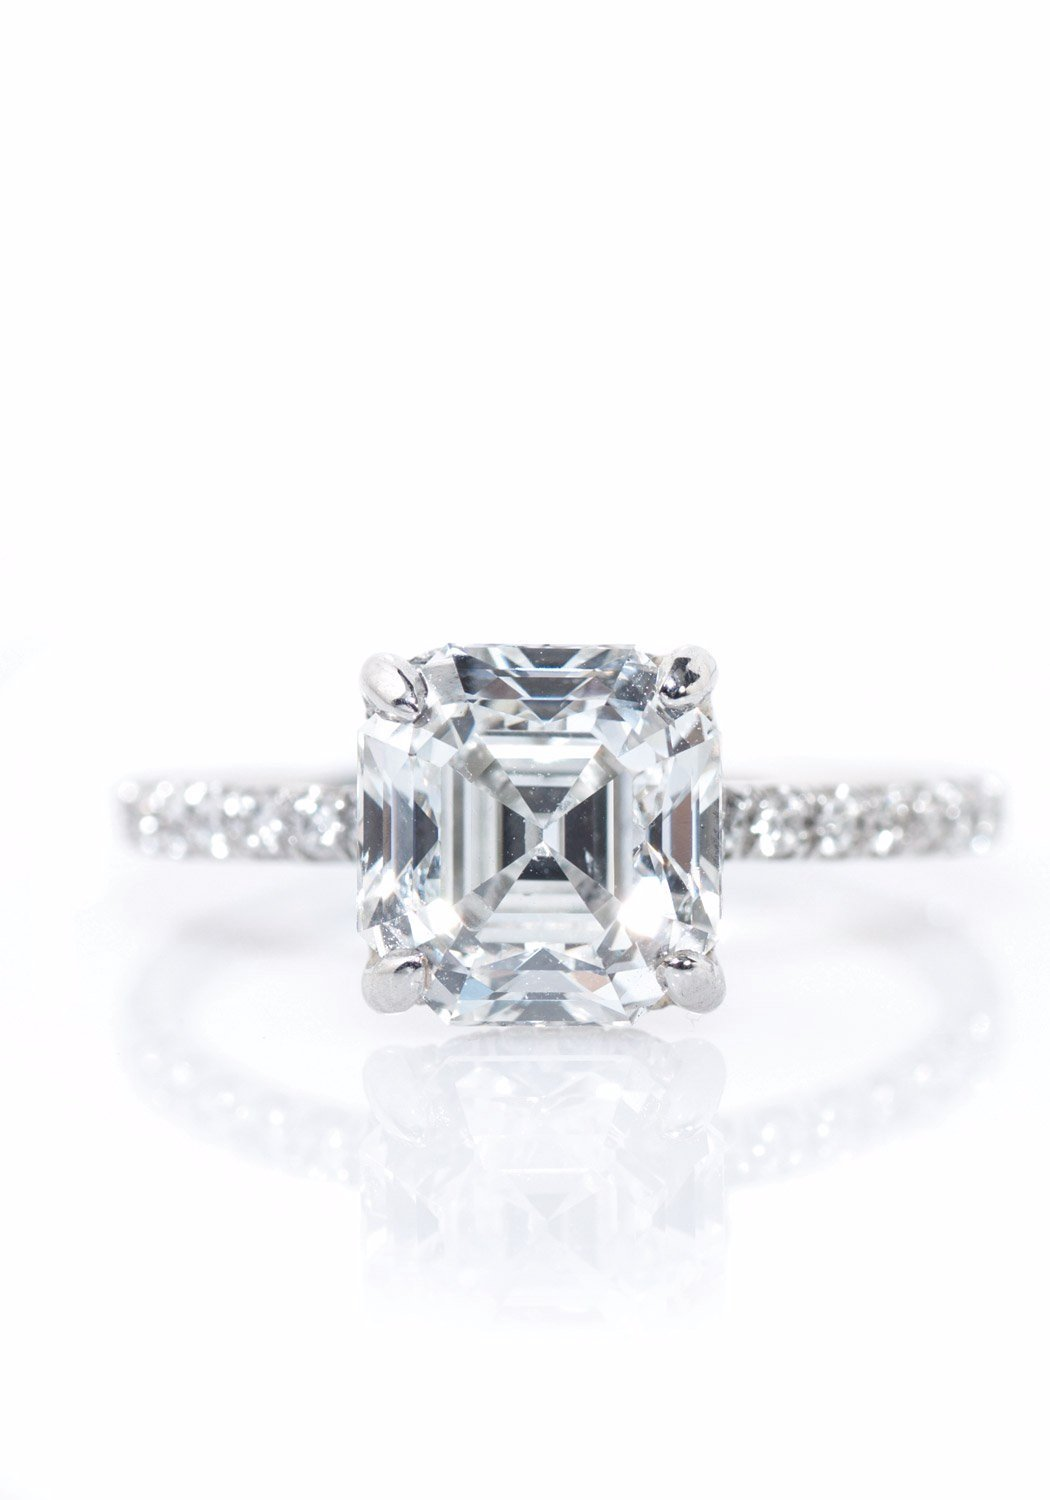 Louis Glick  Asscher Cut Diamond Ring